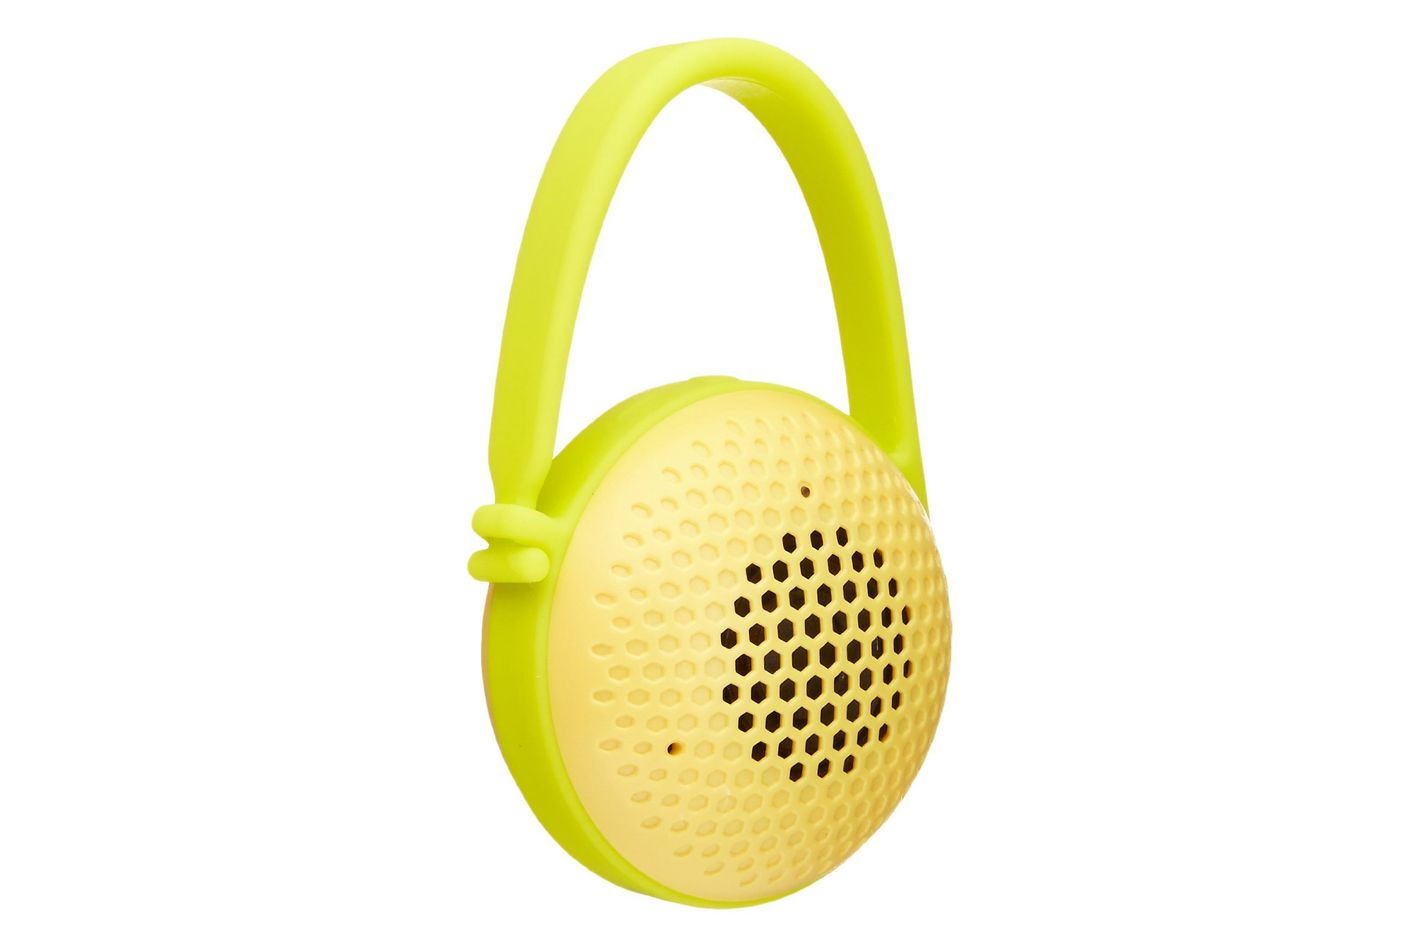 AmazonBasics Nano Bluetooth Speaker — Yellow